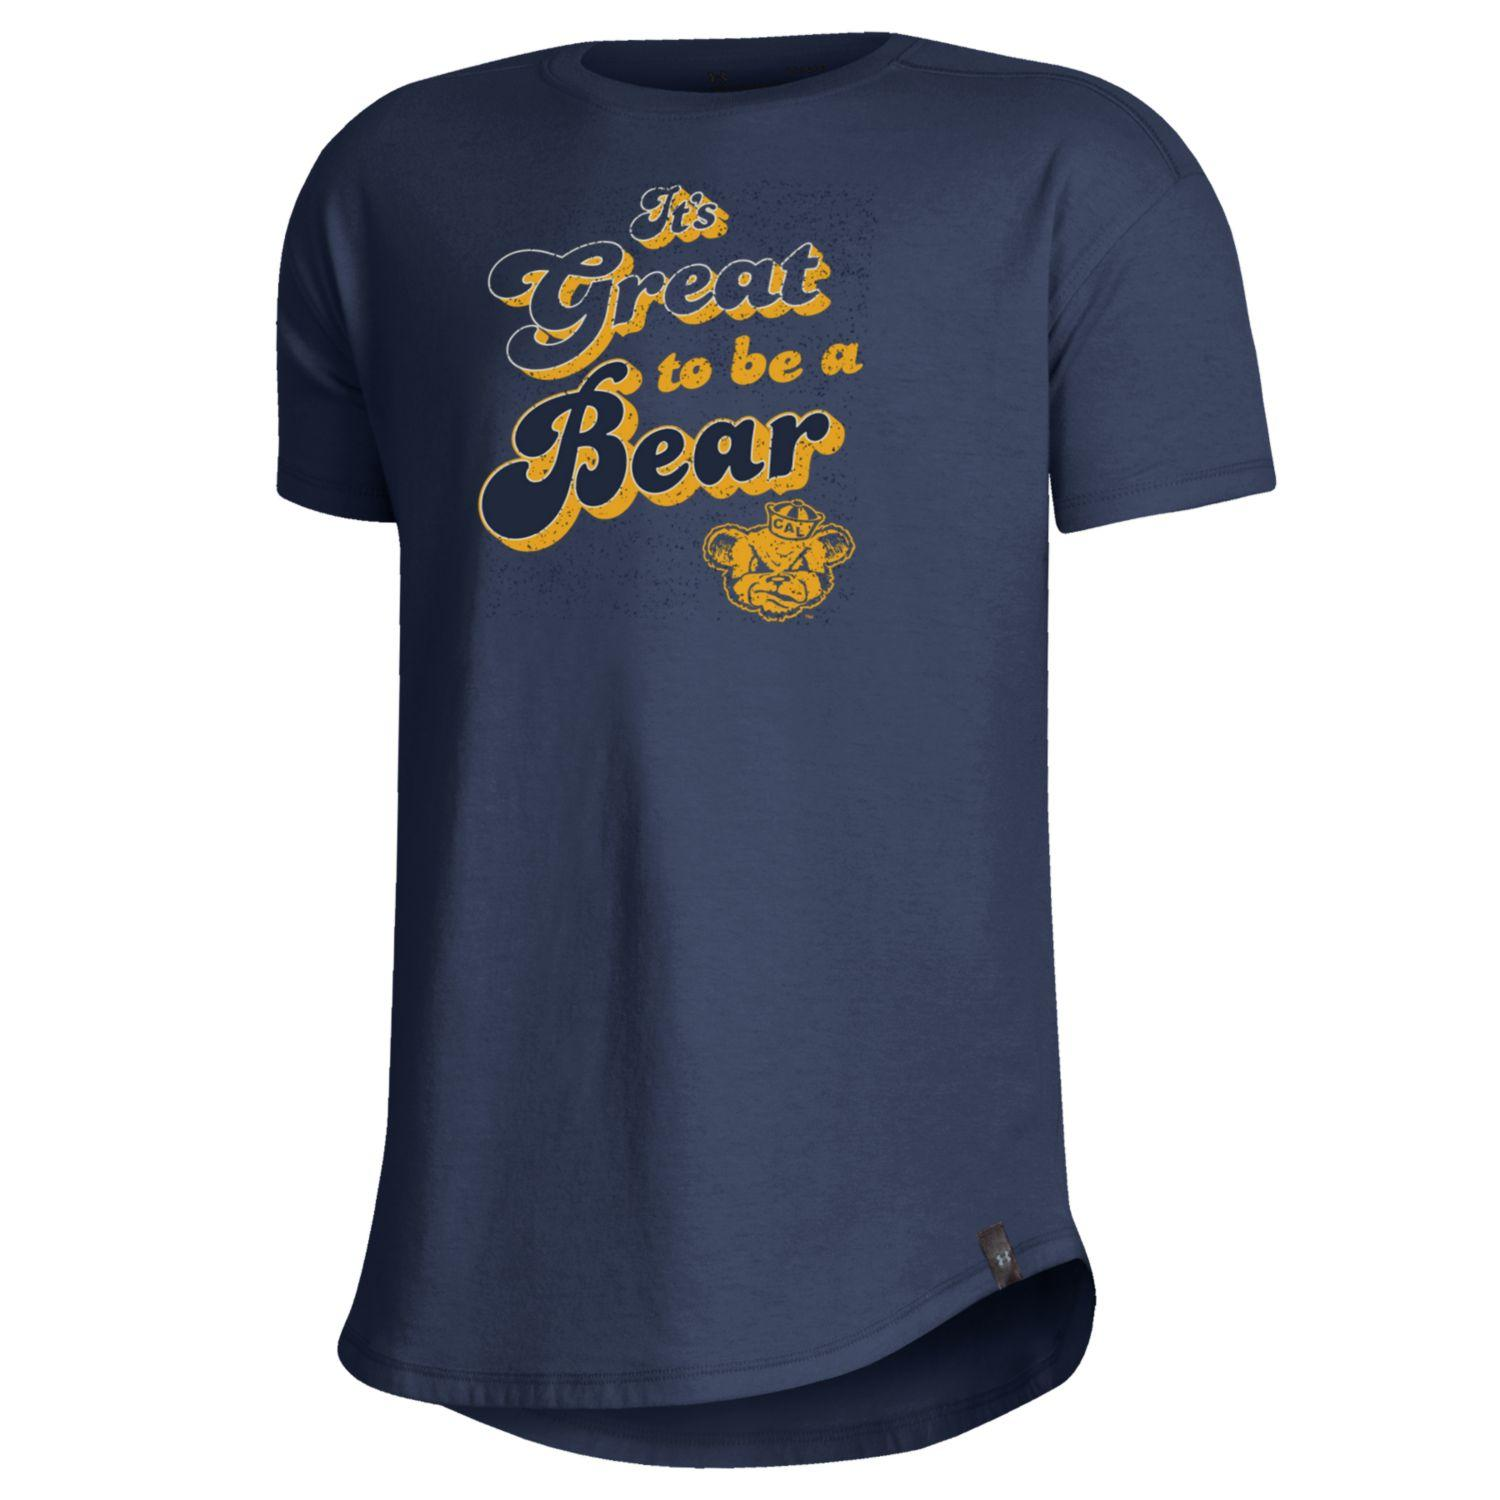 Youth G SS Tee Performance Cotton It's Great To Be A Bear Oski